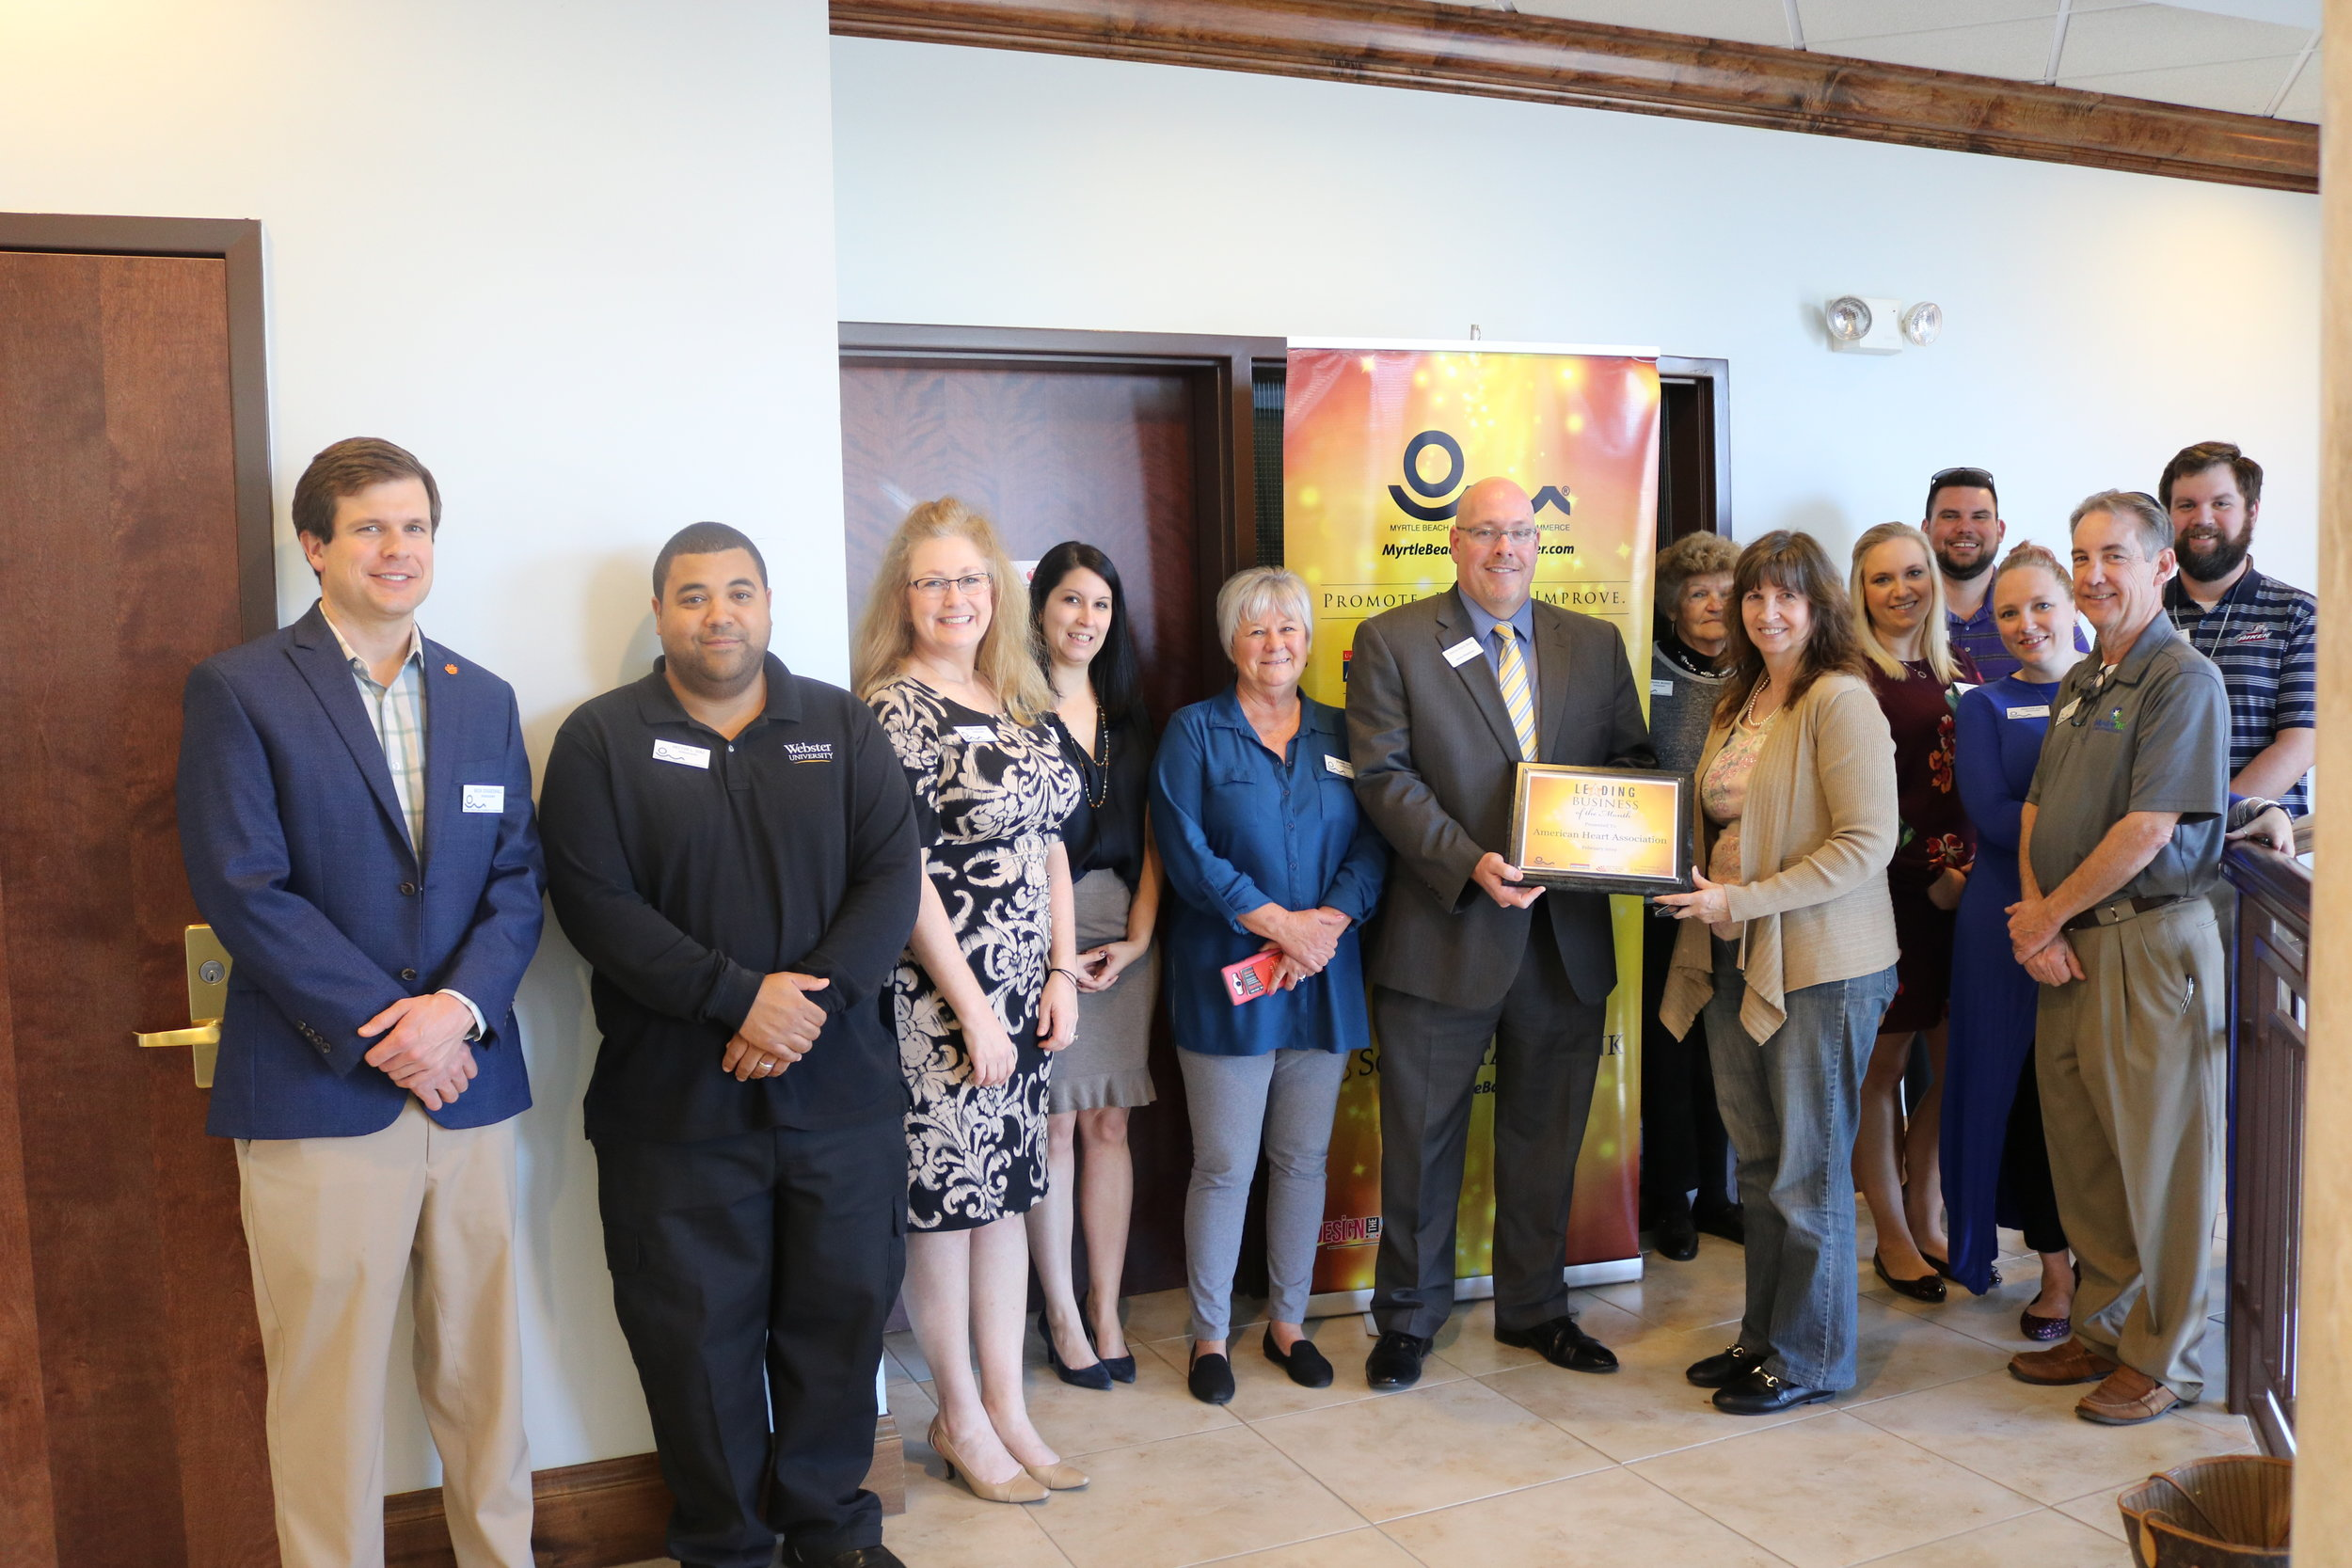 South State Bank and MBACC ambassadors during the presentation of the February Leading Business of the Month presentation to the American Heart Association.